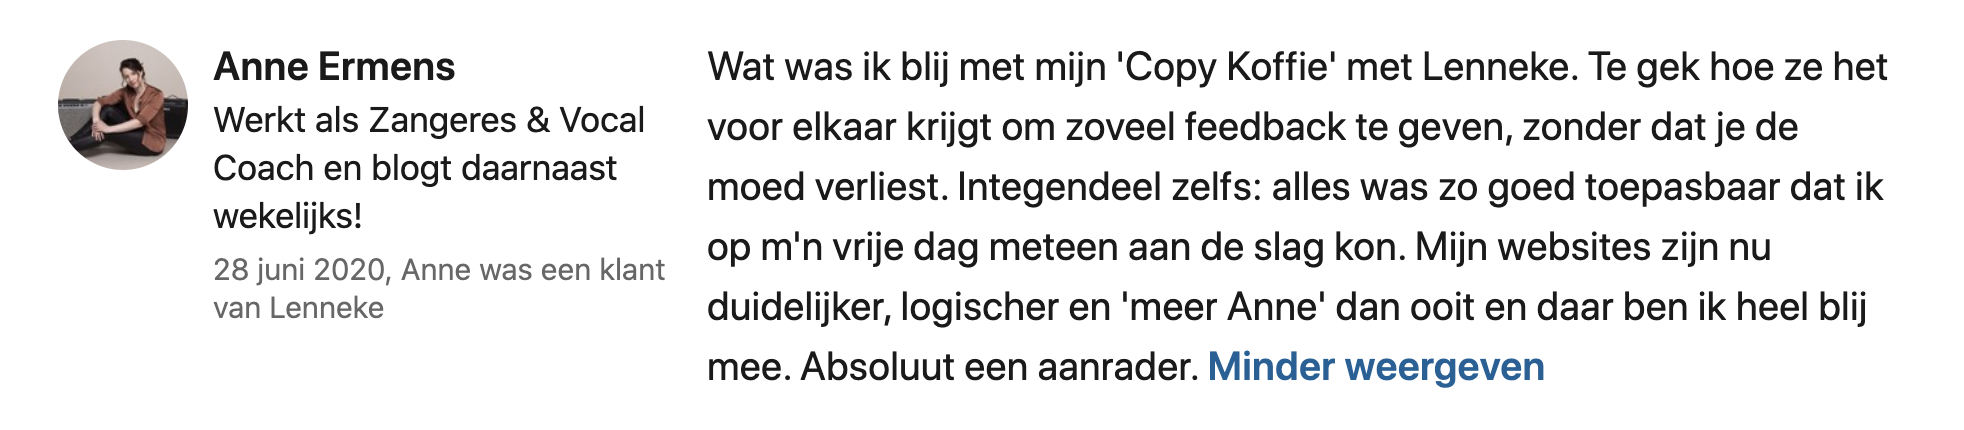 Anne Ermens over copy koffie